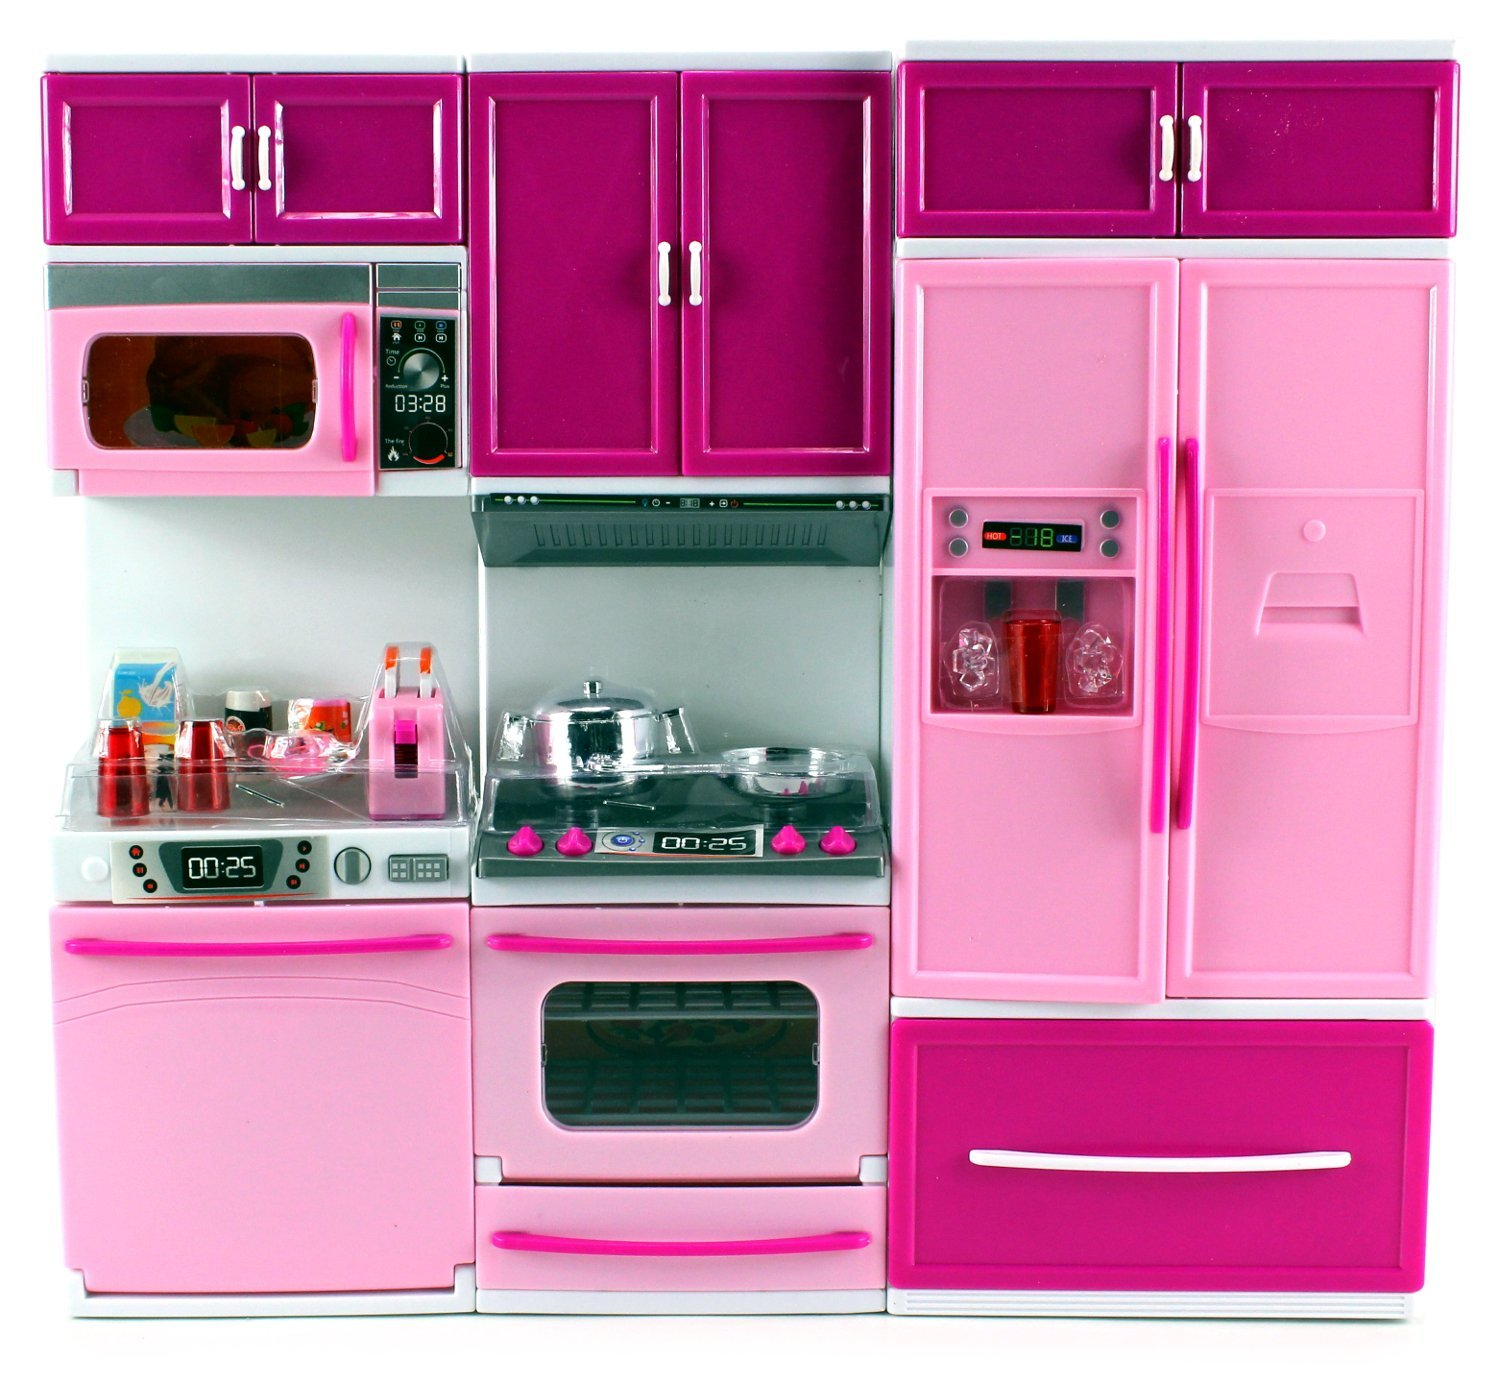 "My Happy Kitchen Dishwasher Oven Refrigerator Battery Operated Toy Doll Kitchen Playset w/ Lights, Sounds, Perfect for Use with 11-12"" Tall Dolls"